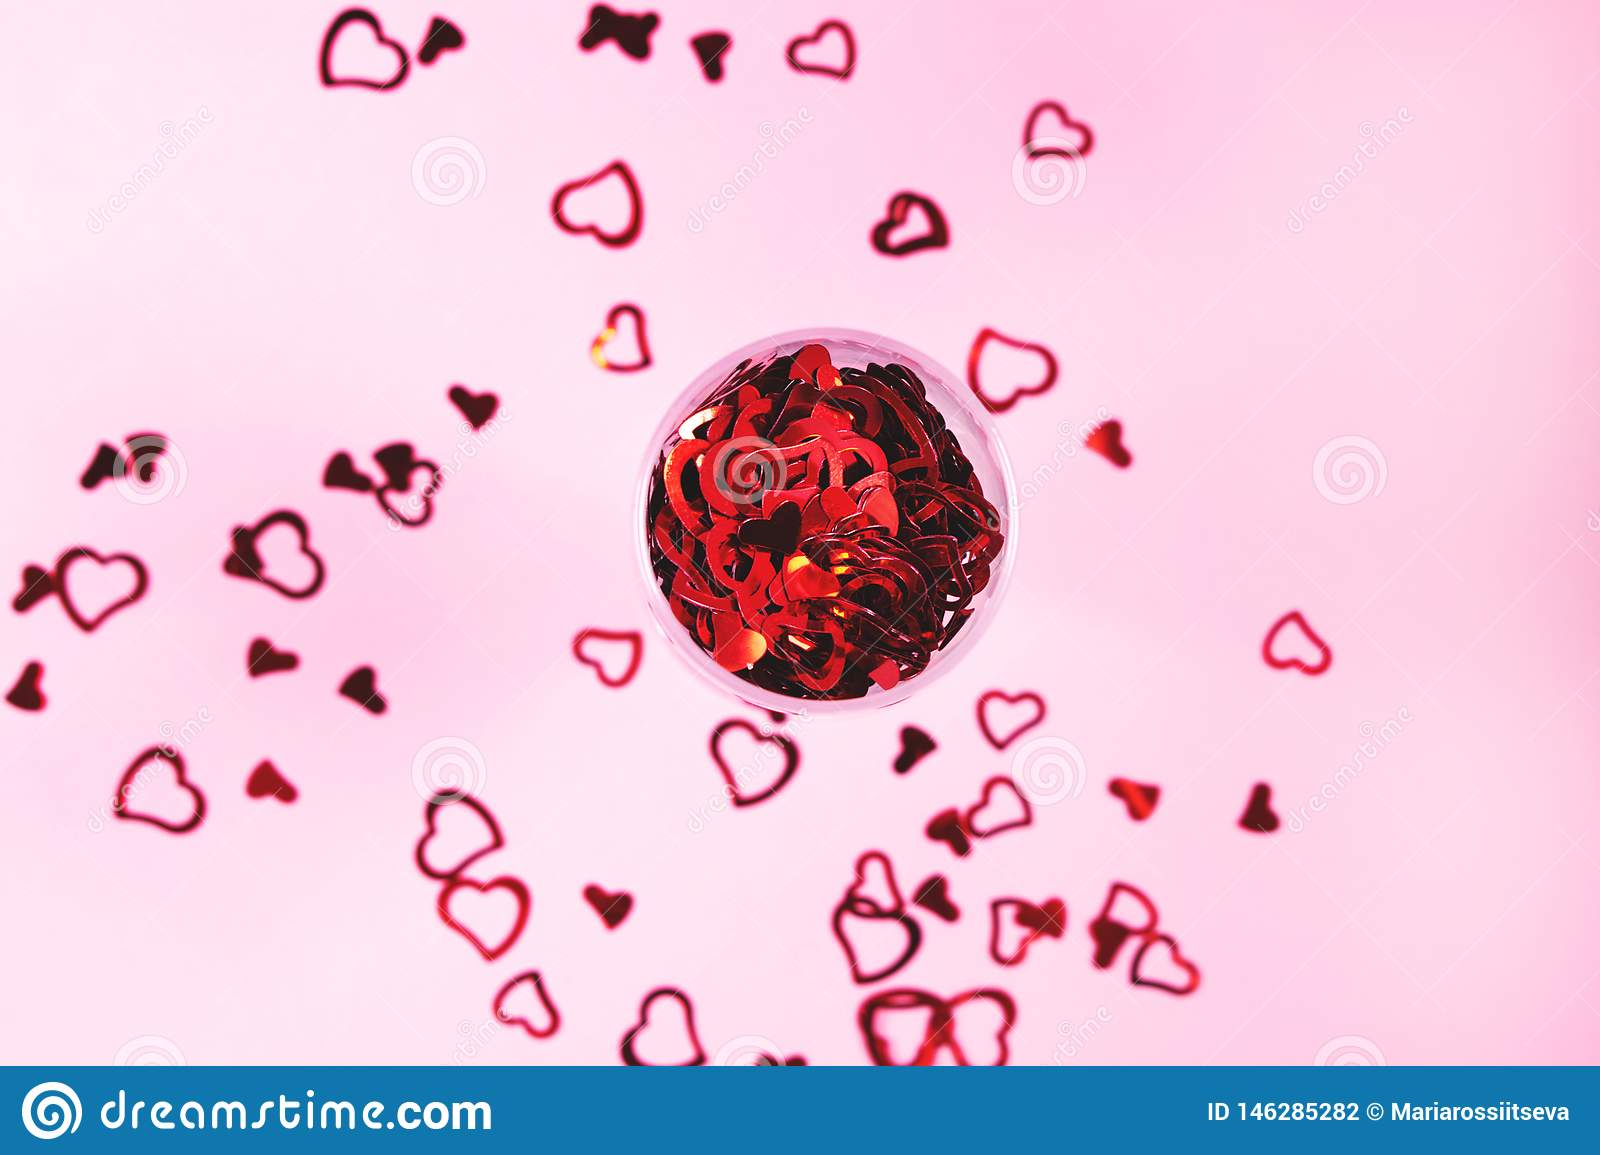 Heart-shaped confetti on pink background